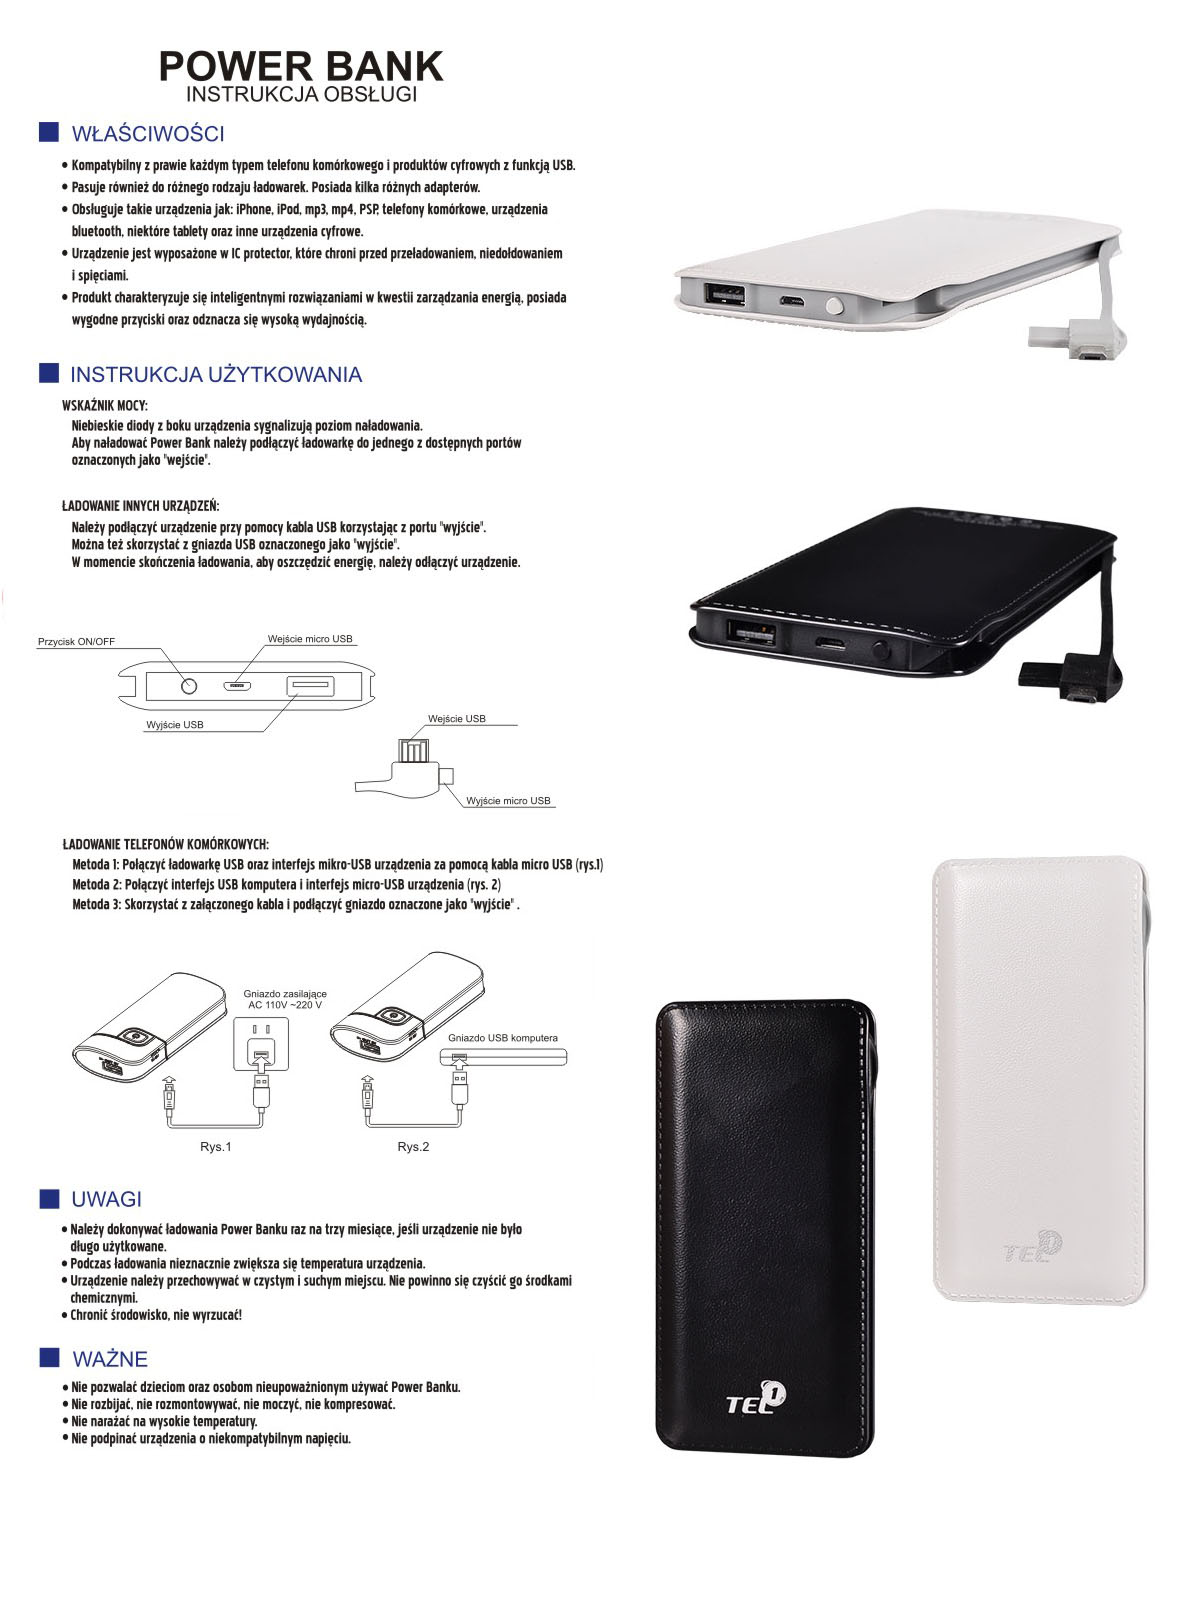 powerbank slim 12000 mAh - citygsm.pl